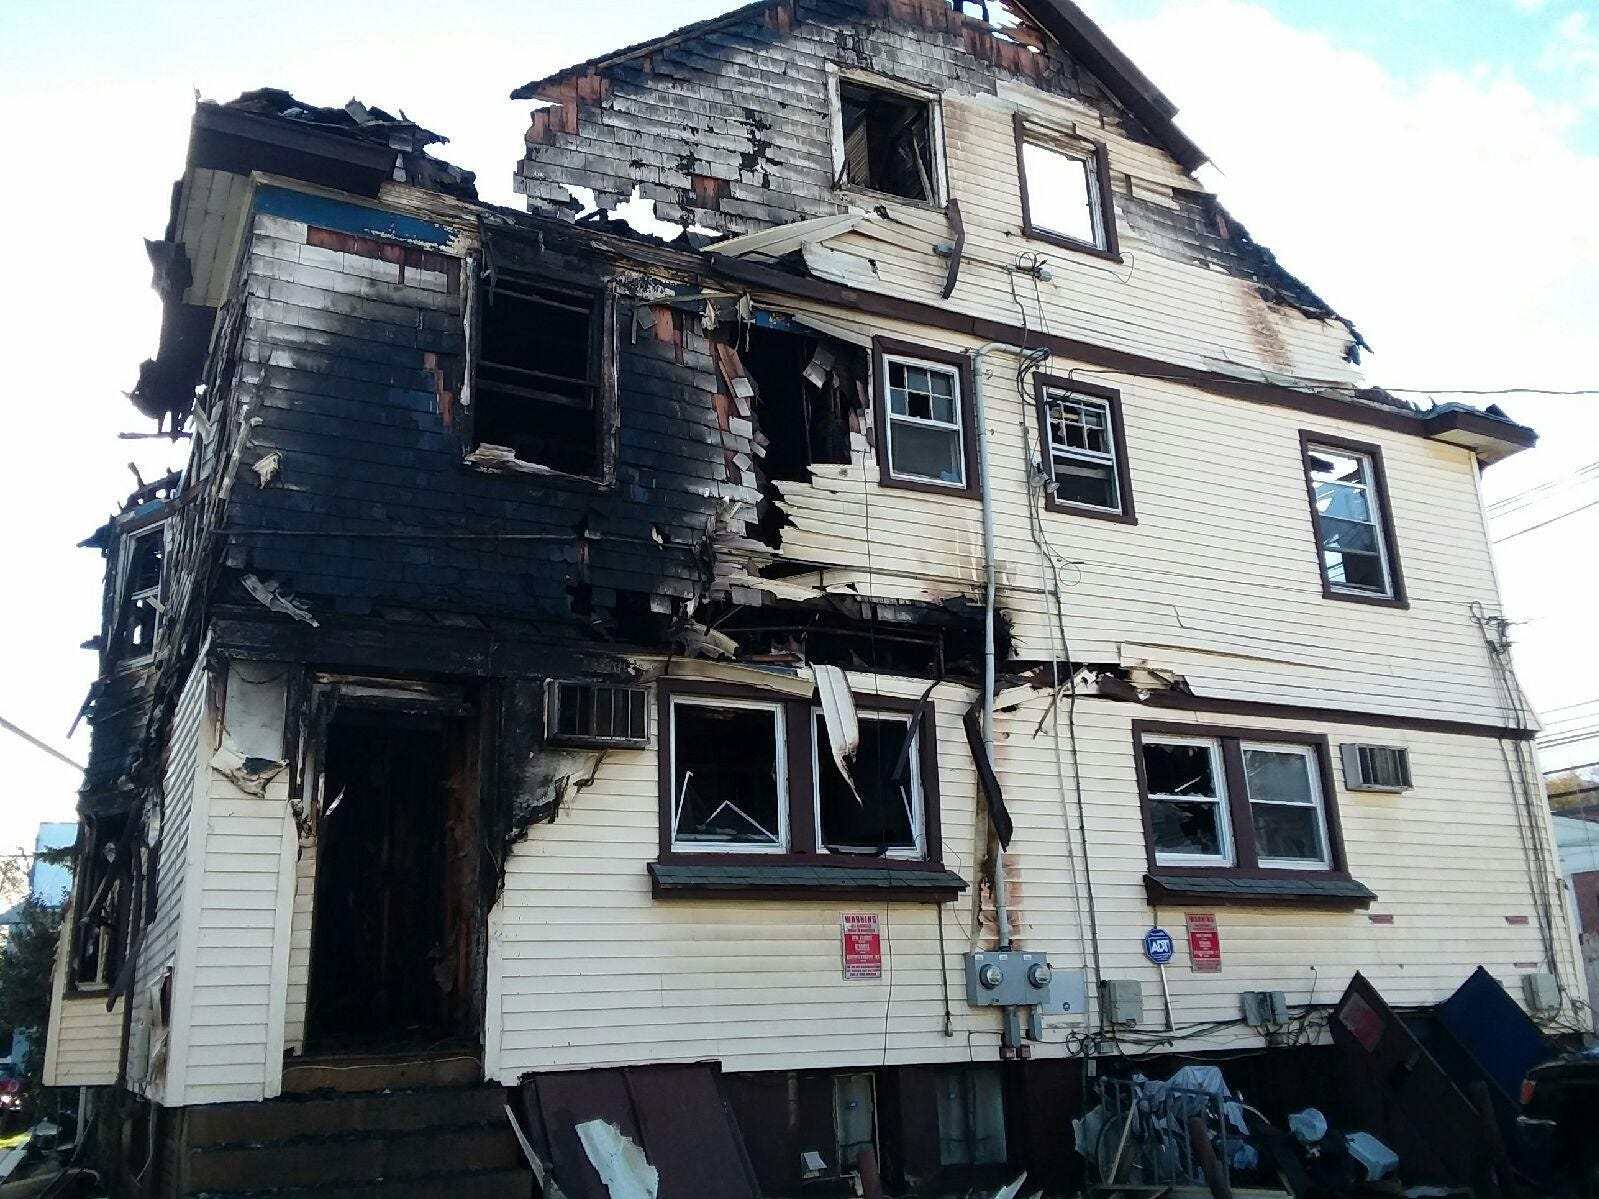 The rooming house on Valley Road after the fire.